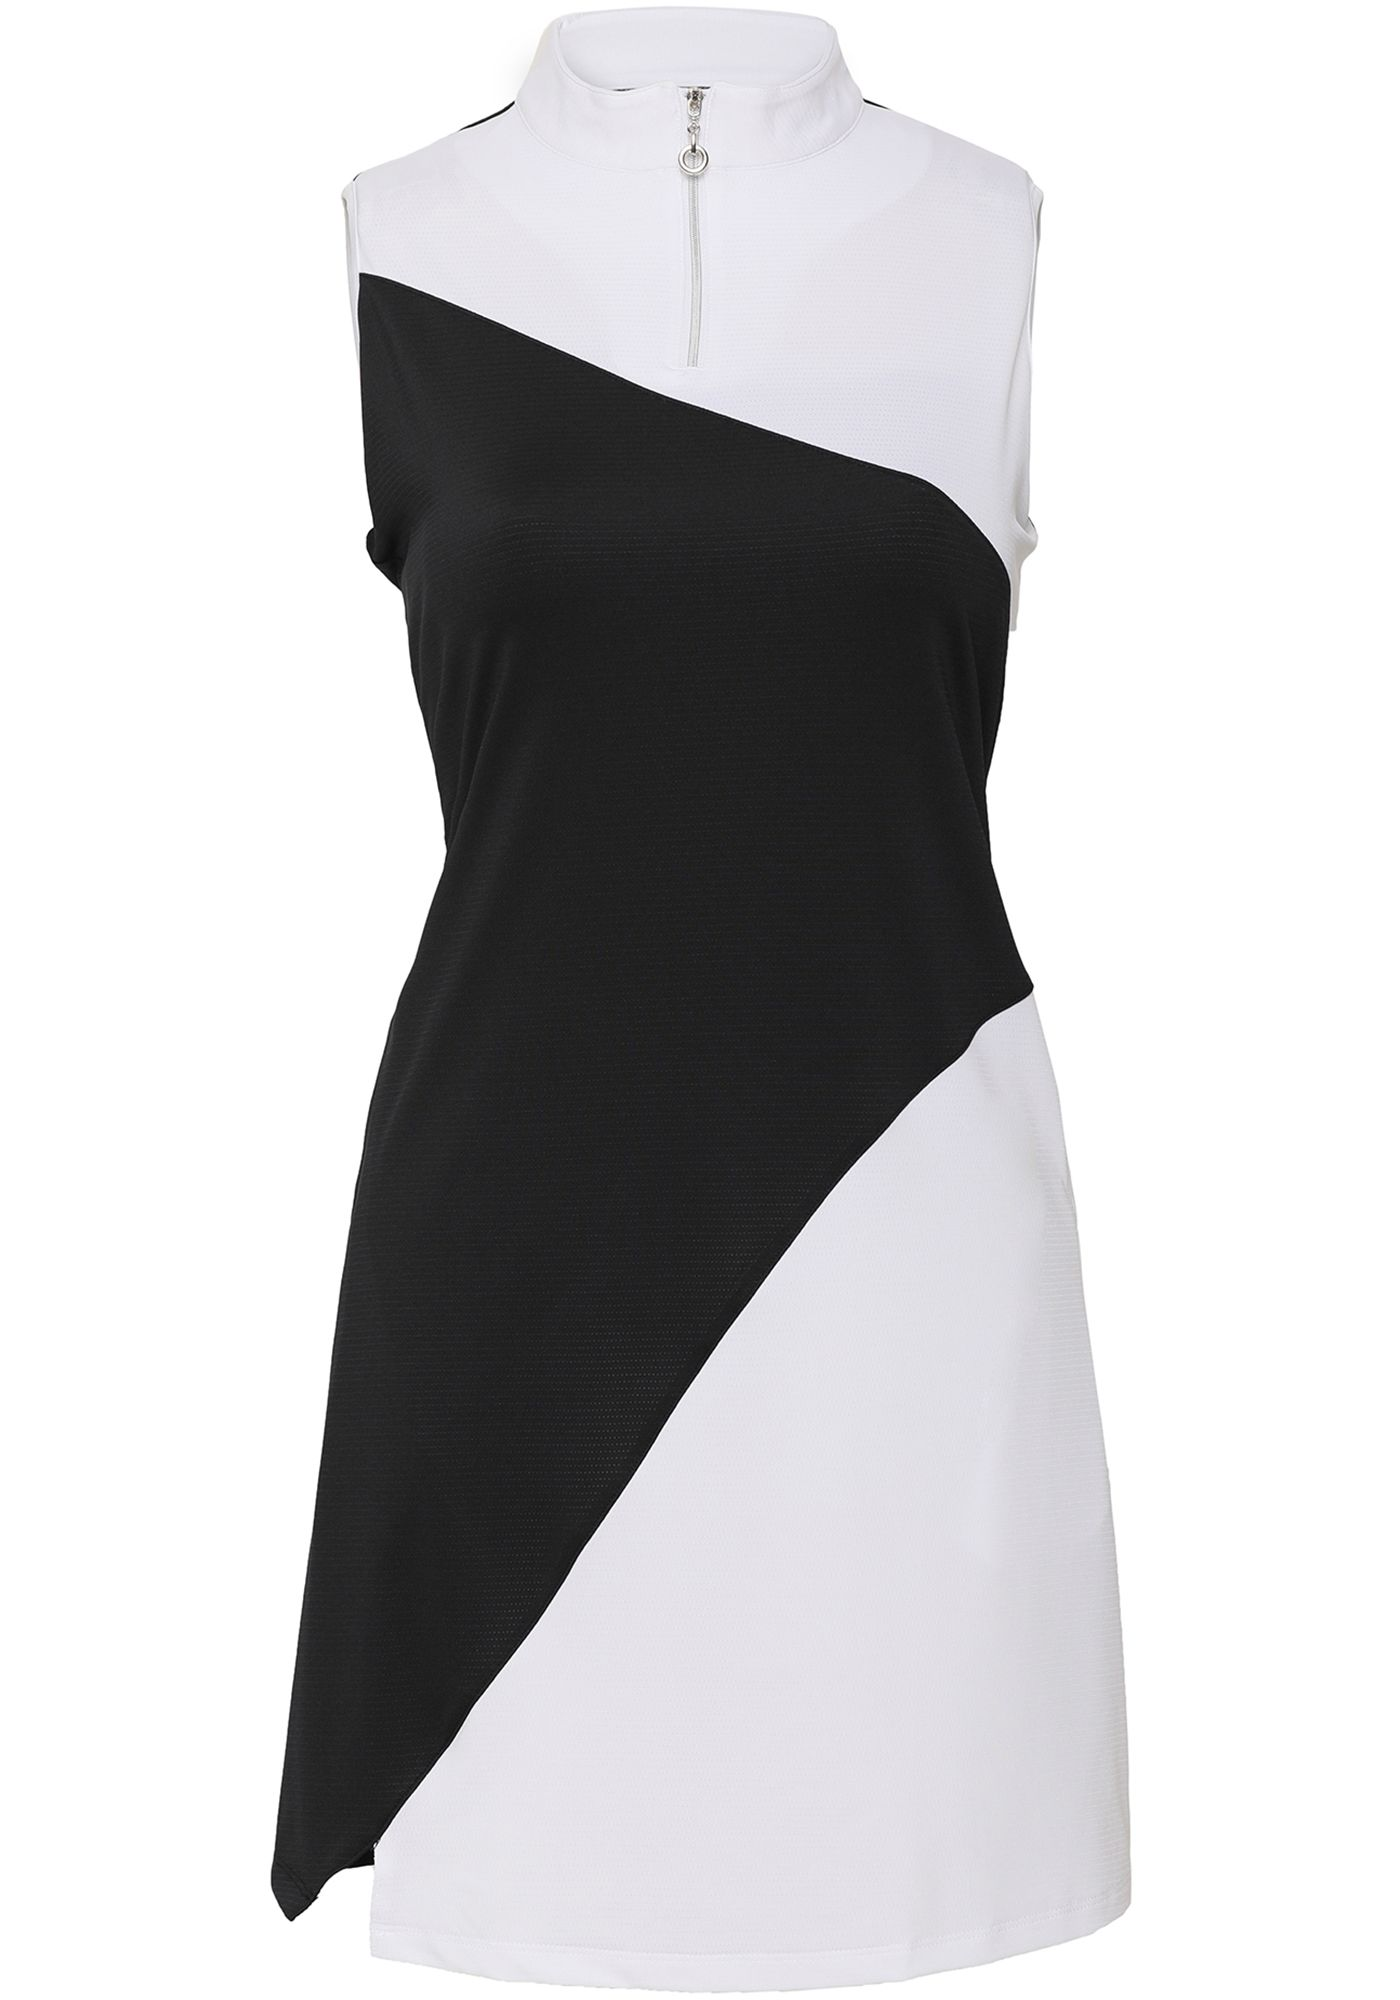 Sport Haley Women's Domino Colorblock Sleeveless Golf Dress